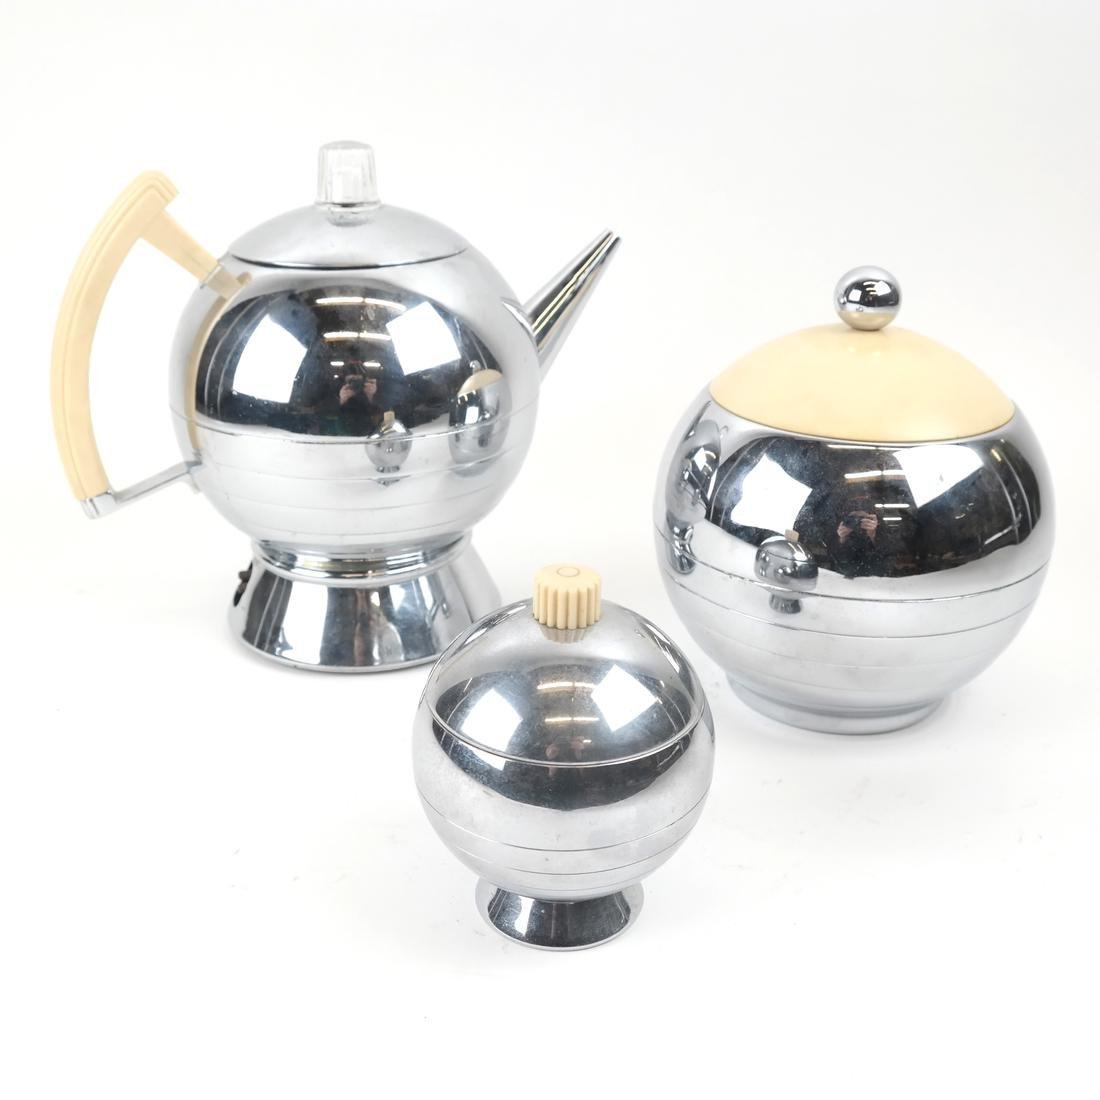 Three Piece Bakelite and Chrome Tea Set by Chase